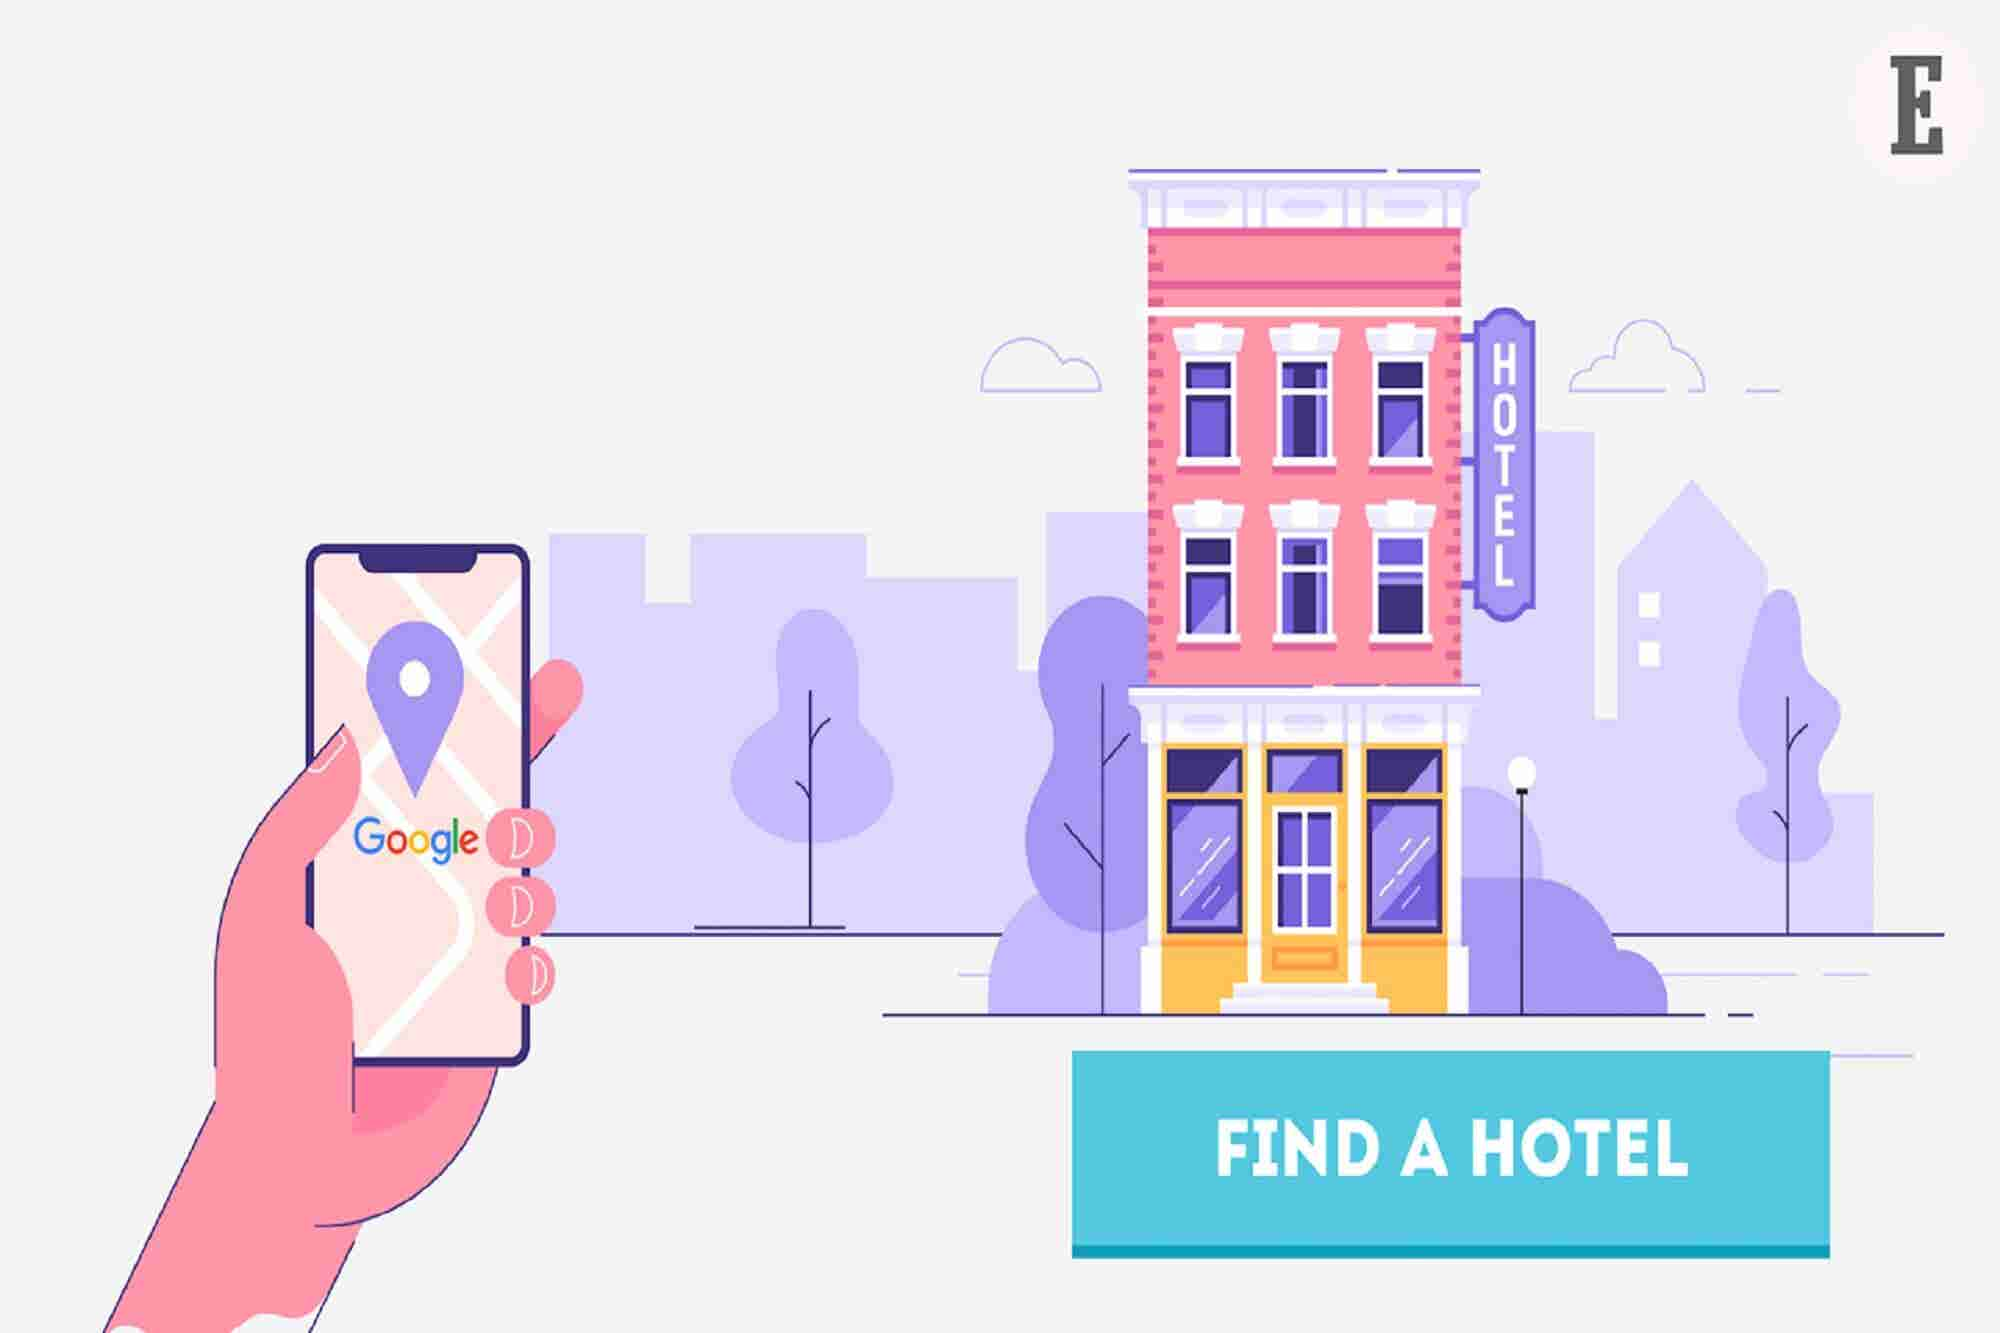 #MeToo is Spreading in India's Corporate World & Make Google Book a Hotel For You: 4 Things to Know Today